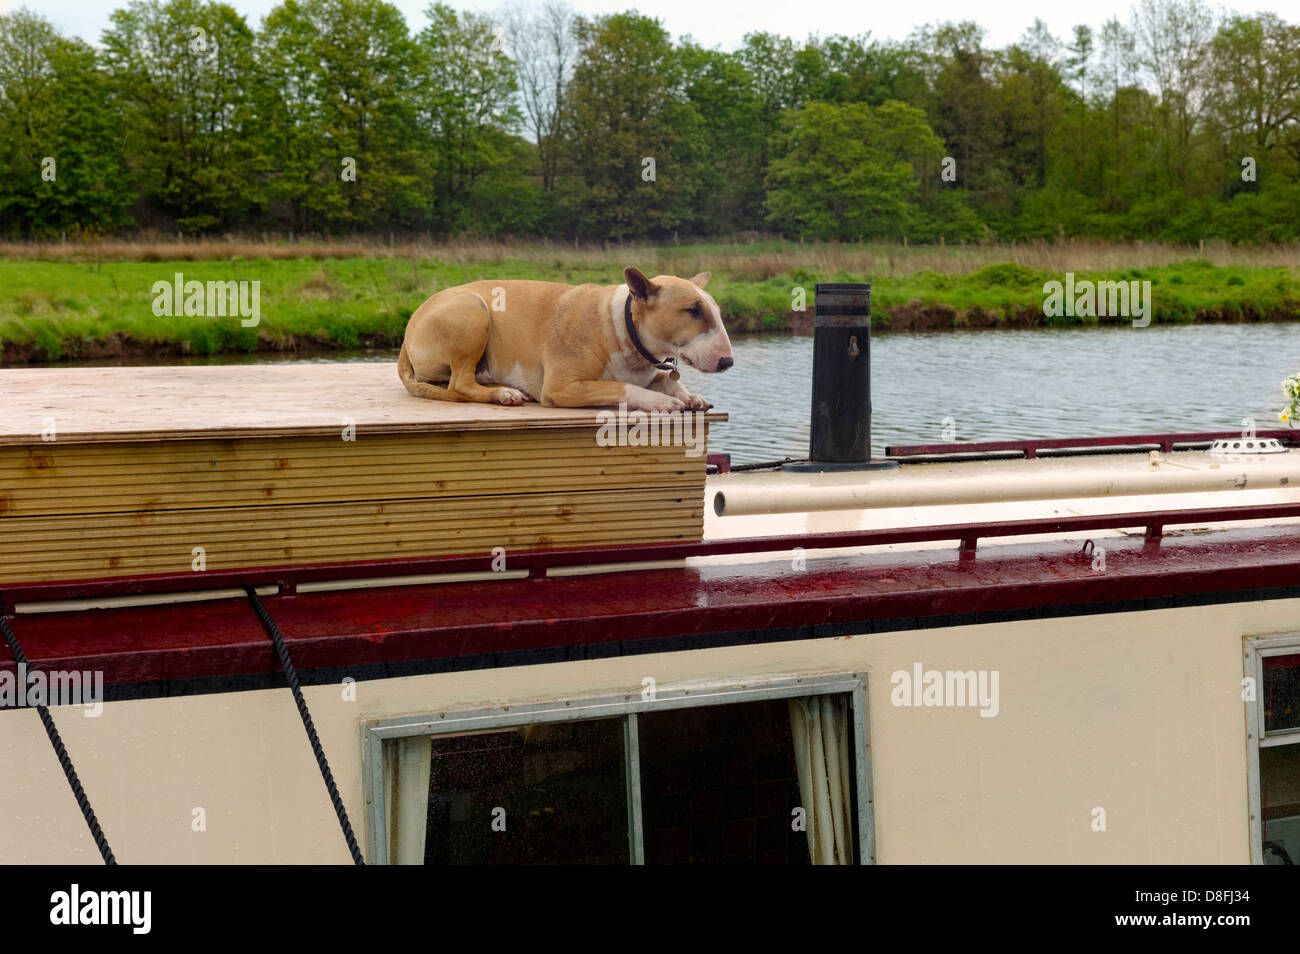 Bull terrier lying on a narrow boat roof watching the scenery float by on the Trent and Mersey canal - Stock Image